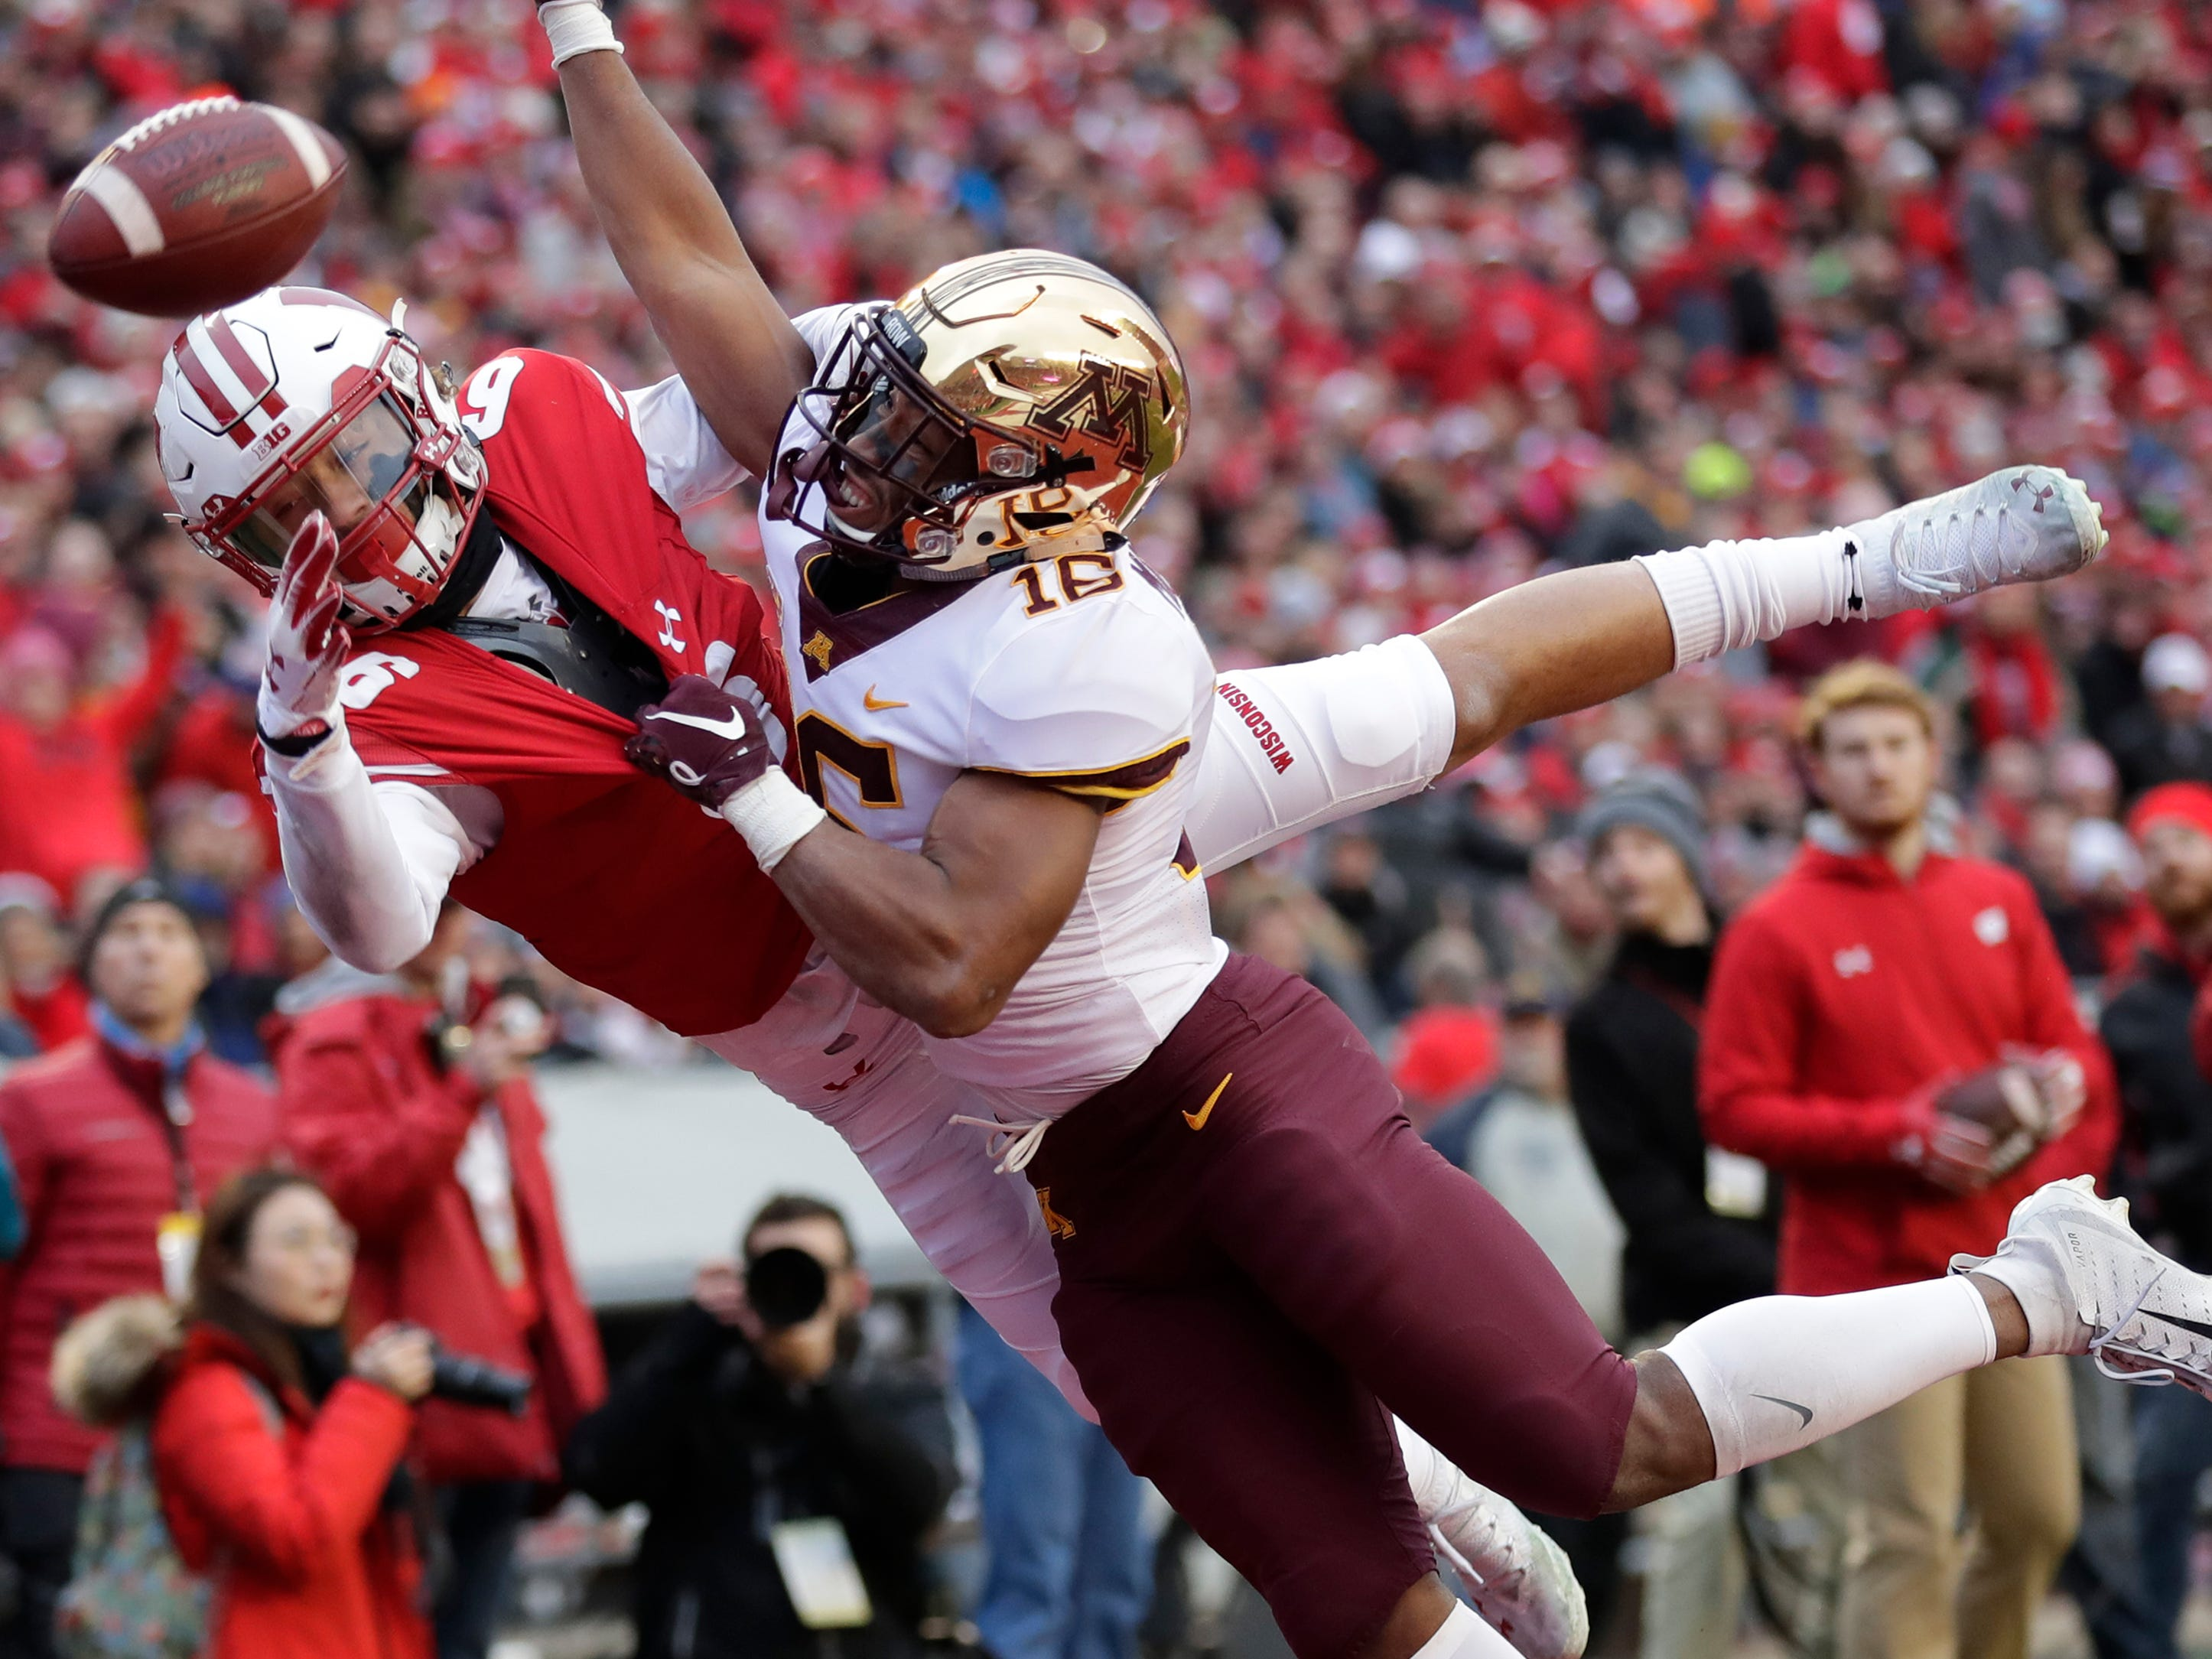 Wisconsin wide receiver Danny Davis is unable to get his hands on a pass in the end zone thanks to the tight coverage of Minnesota defensive back Coney Durr in the first quarter on Saturday.